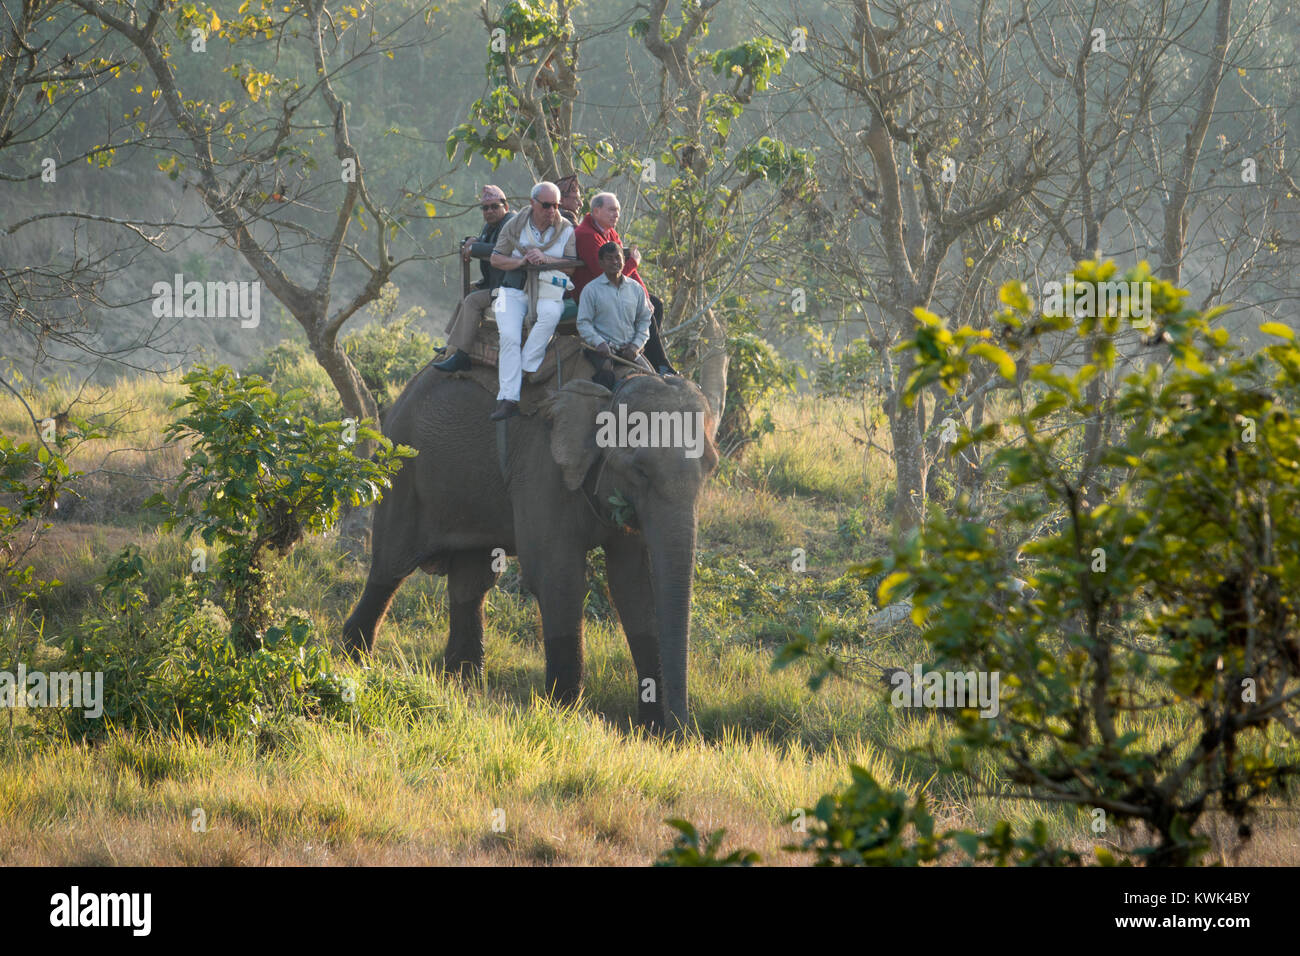 Tourists on elephant jungle safari in Chitwan national Park, Nepal Stock Photo